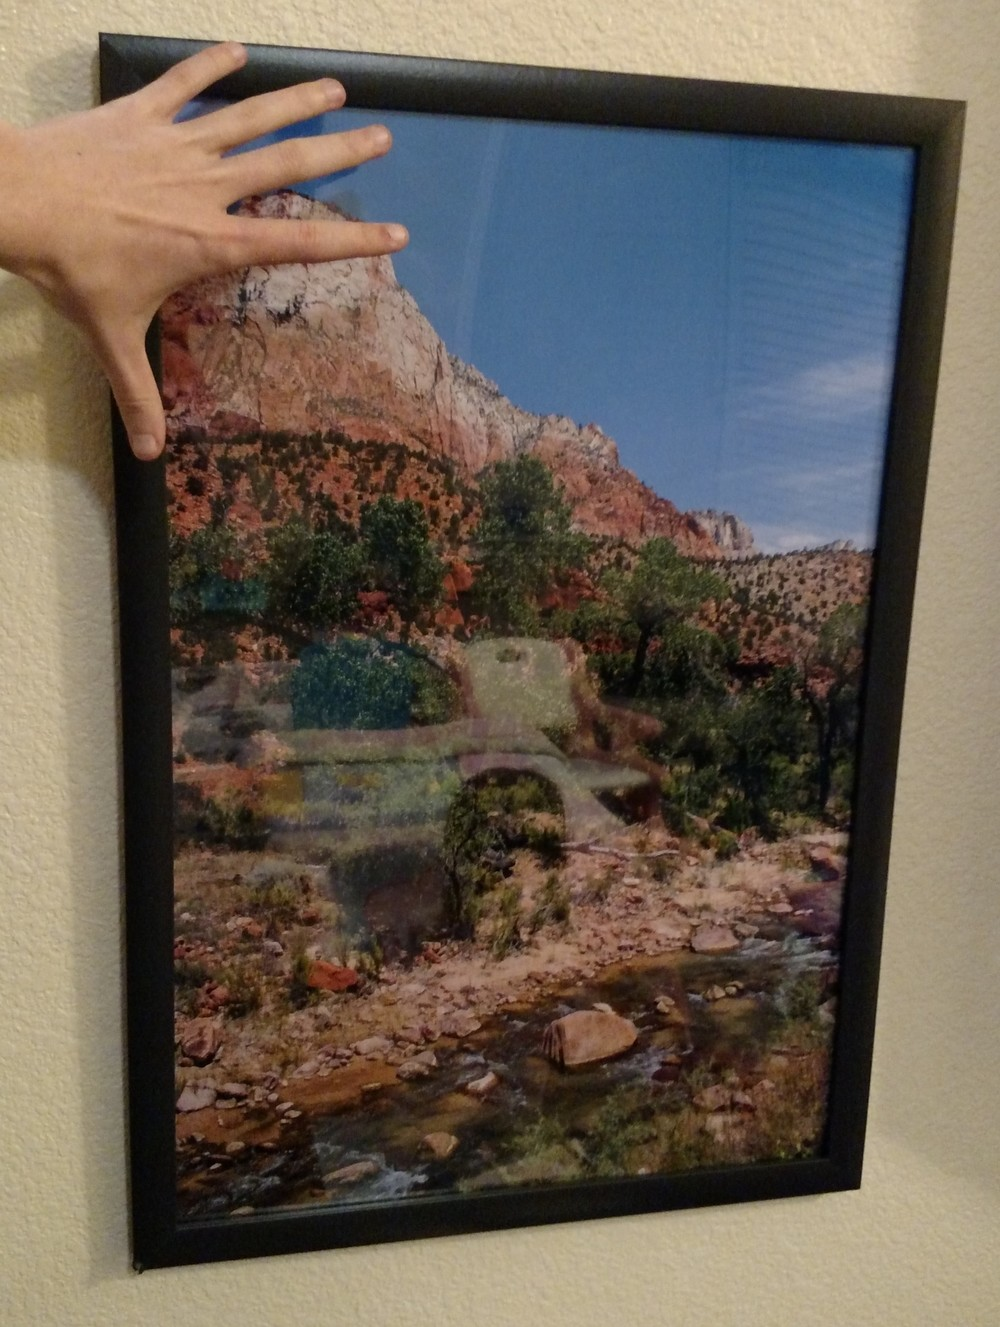 Here's a framed photograph from my graduation present (a trip to Zion National Park with my Grandparents) printed on archival paper.